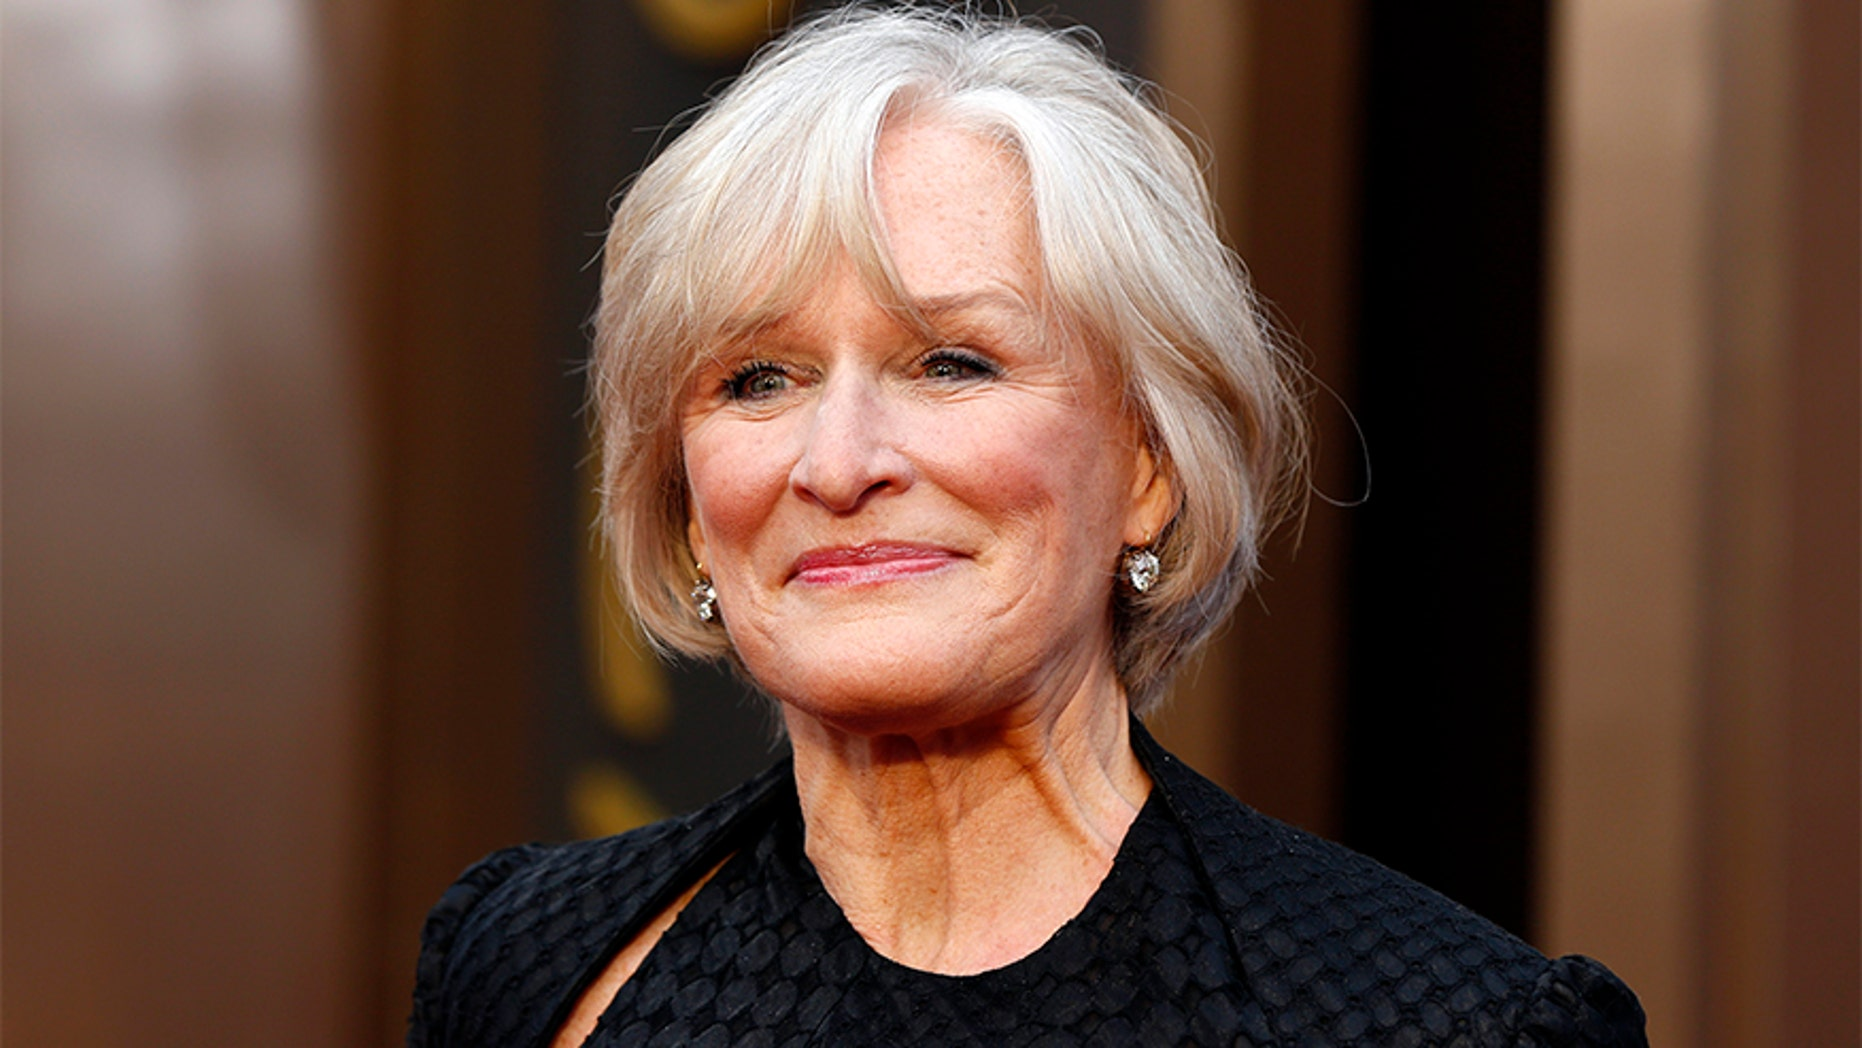 Actress Glenn Close Arrives At The 86th Academy Awards In Hollywood,  California March 2,